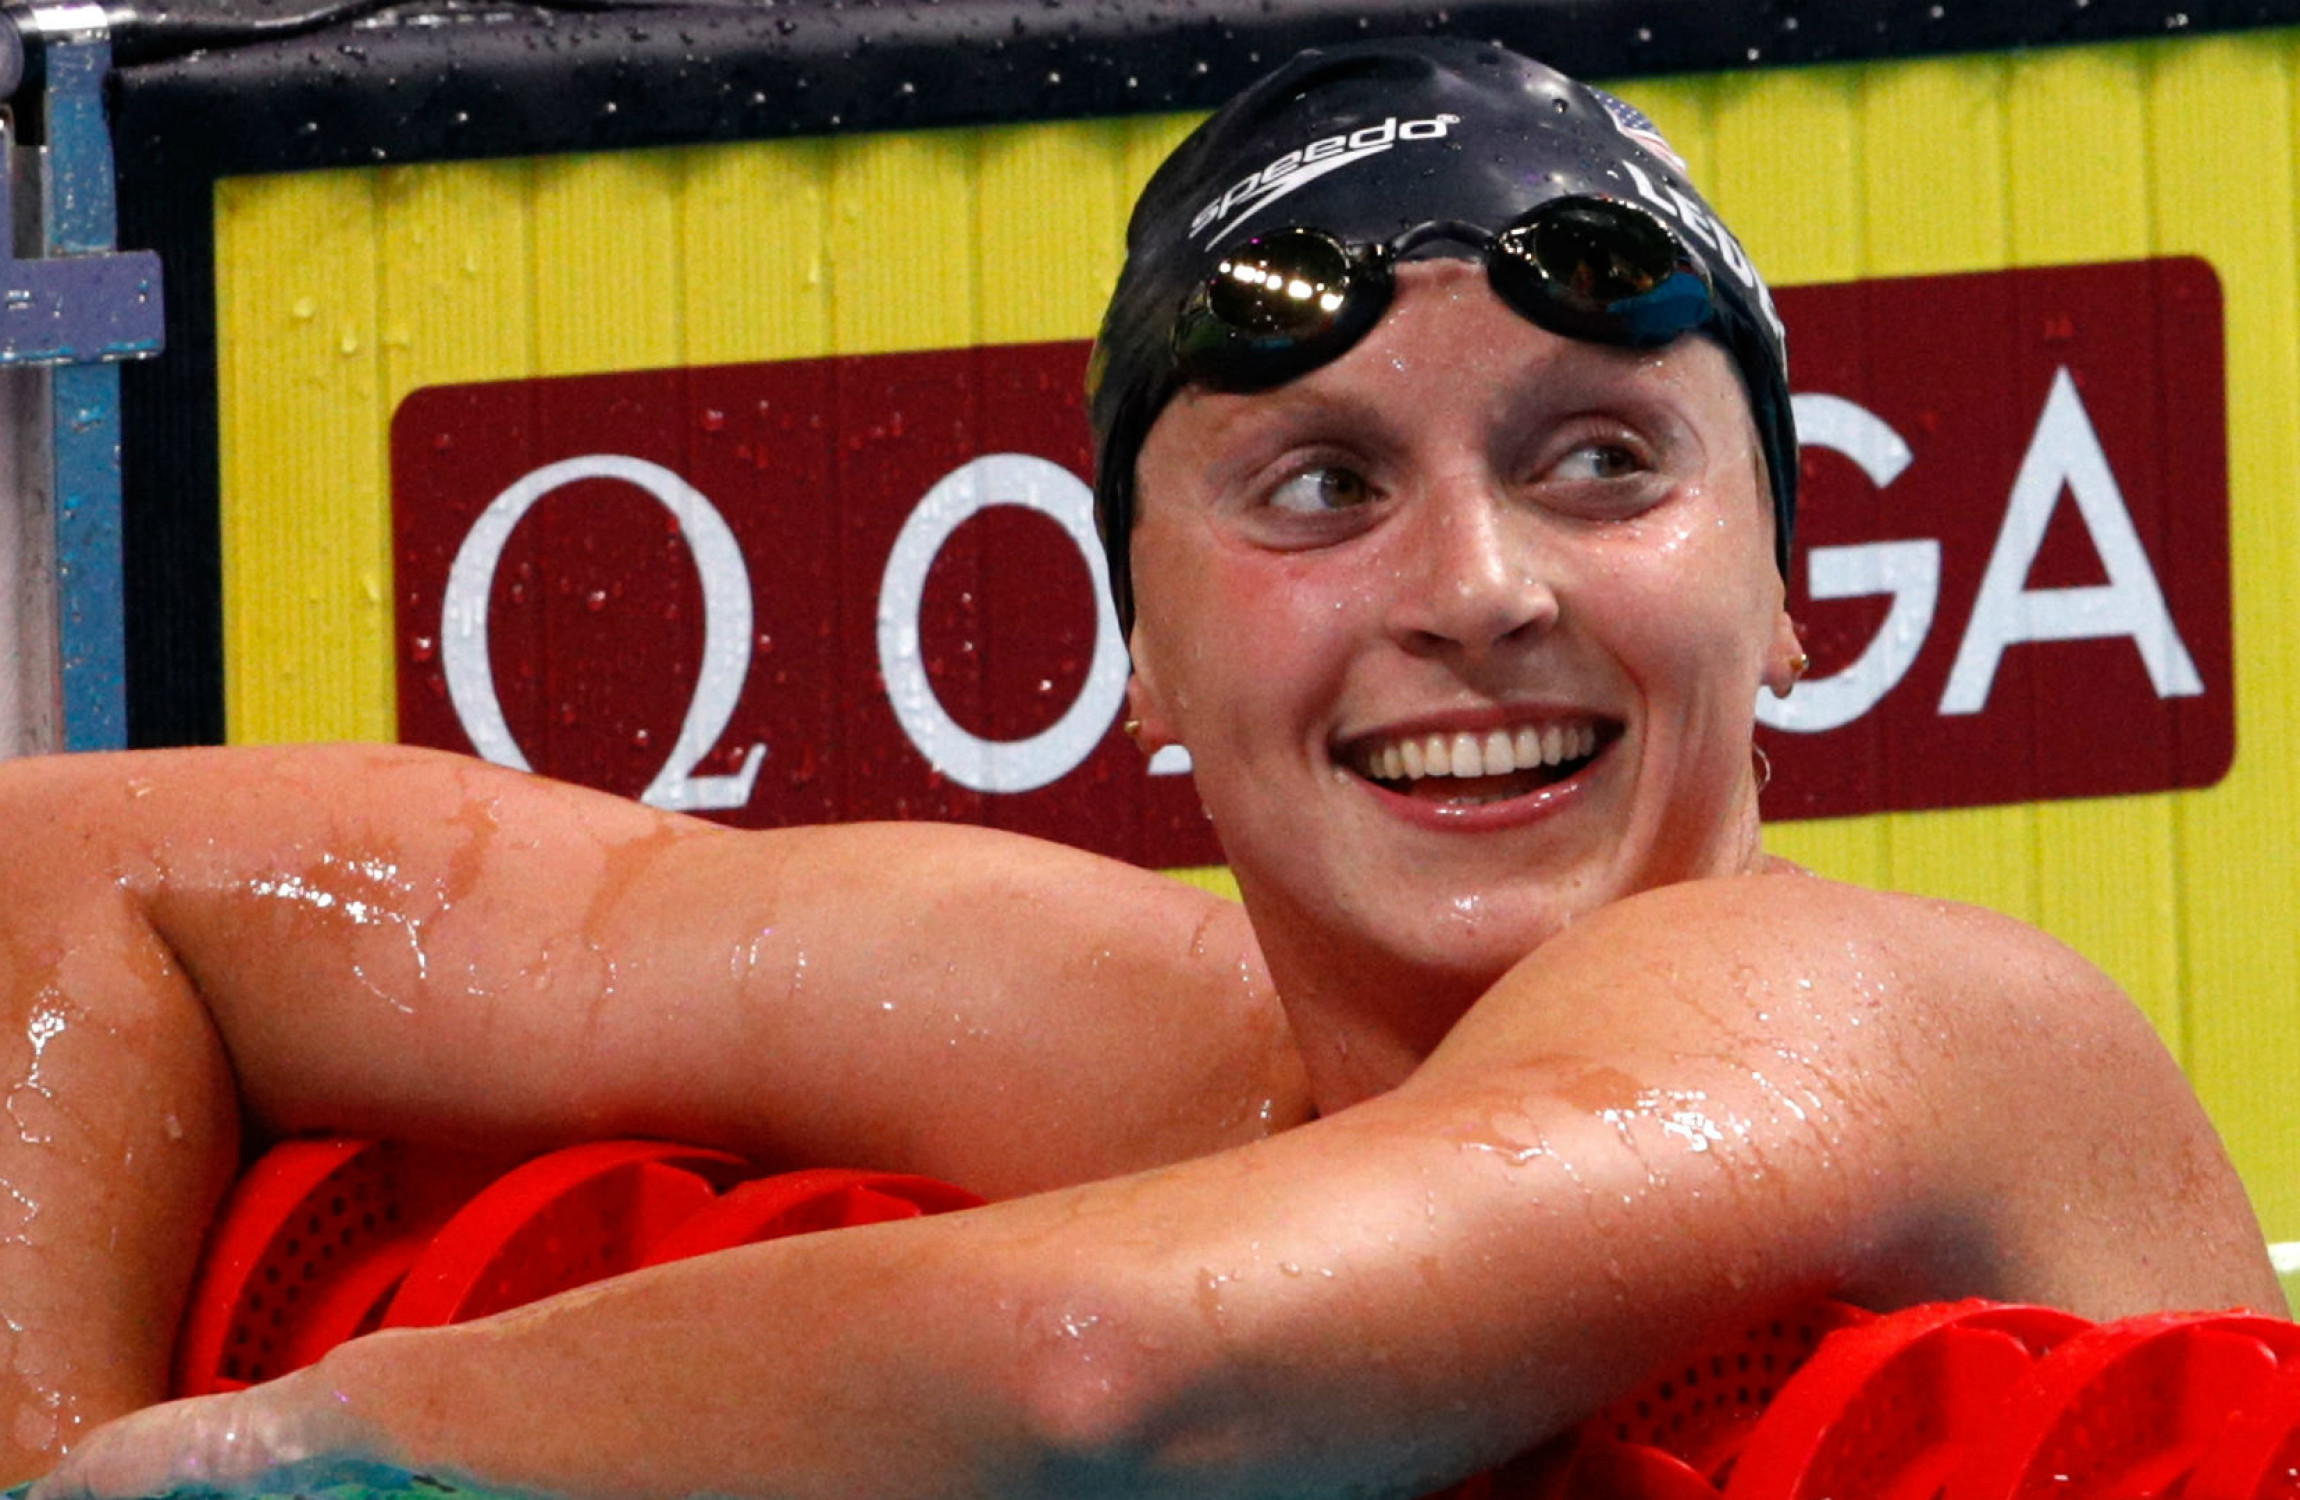 Katie Ledecky wins 5th gold medal at World Championships